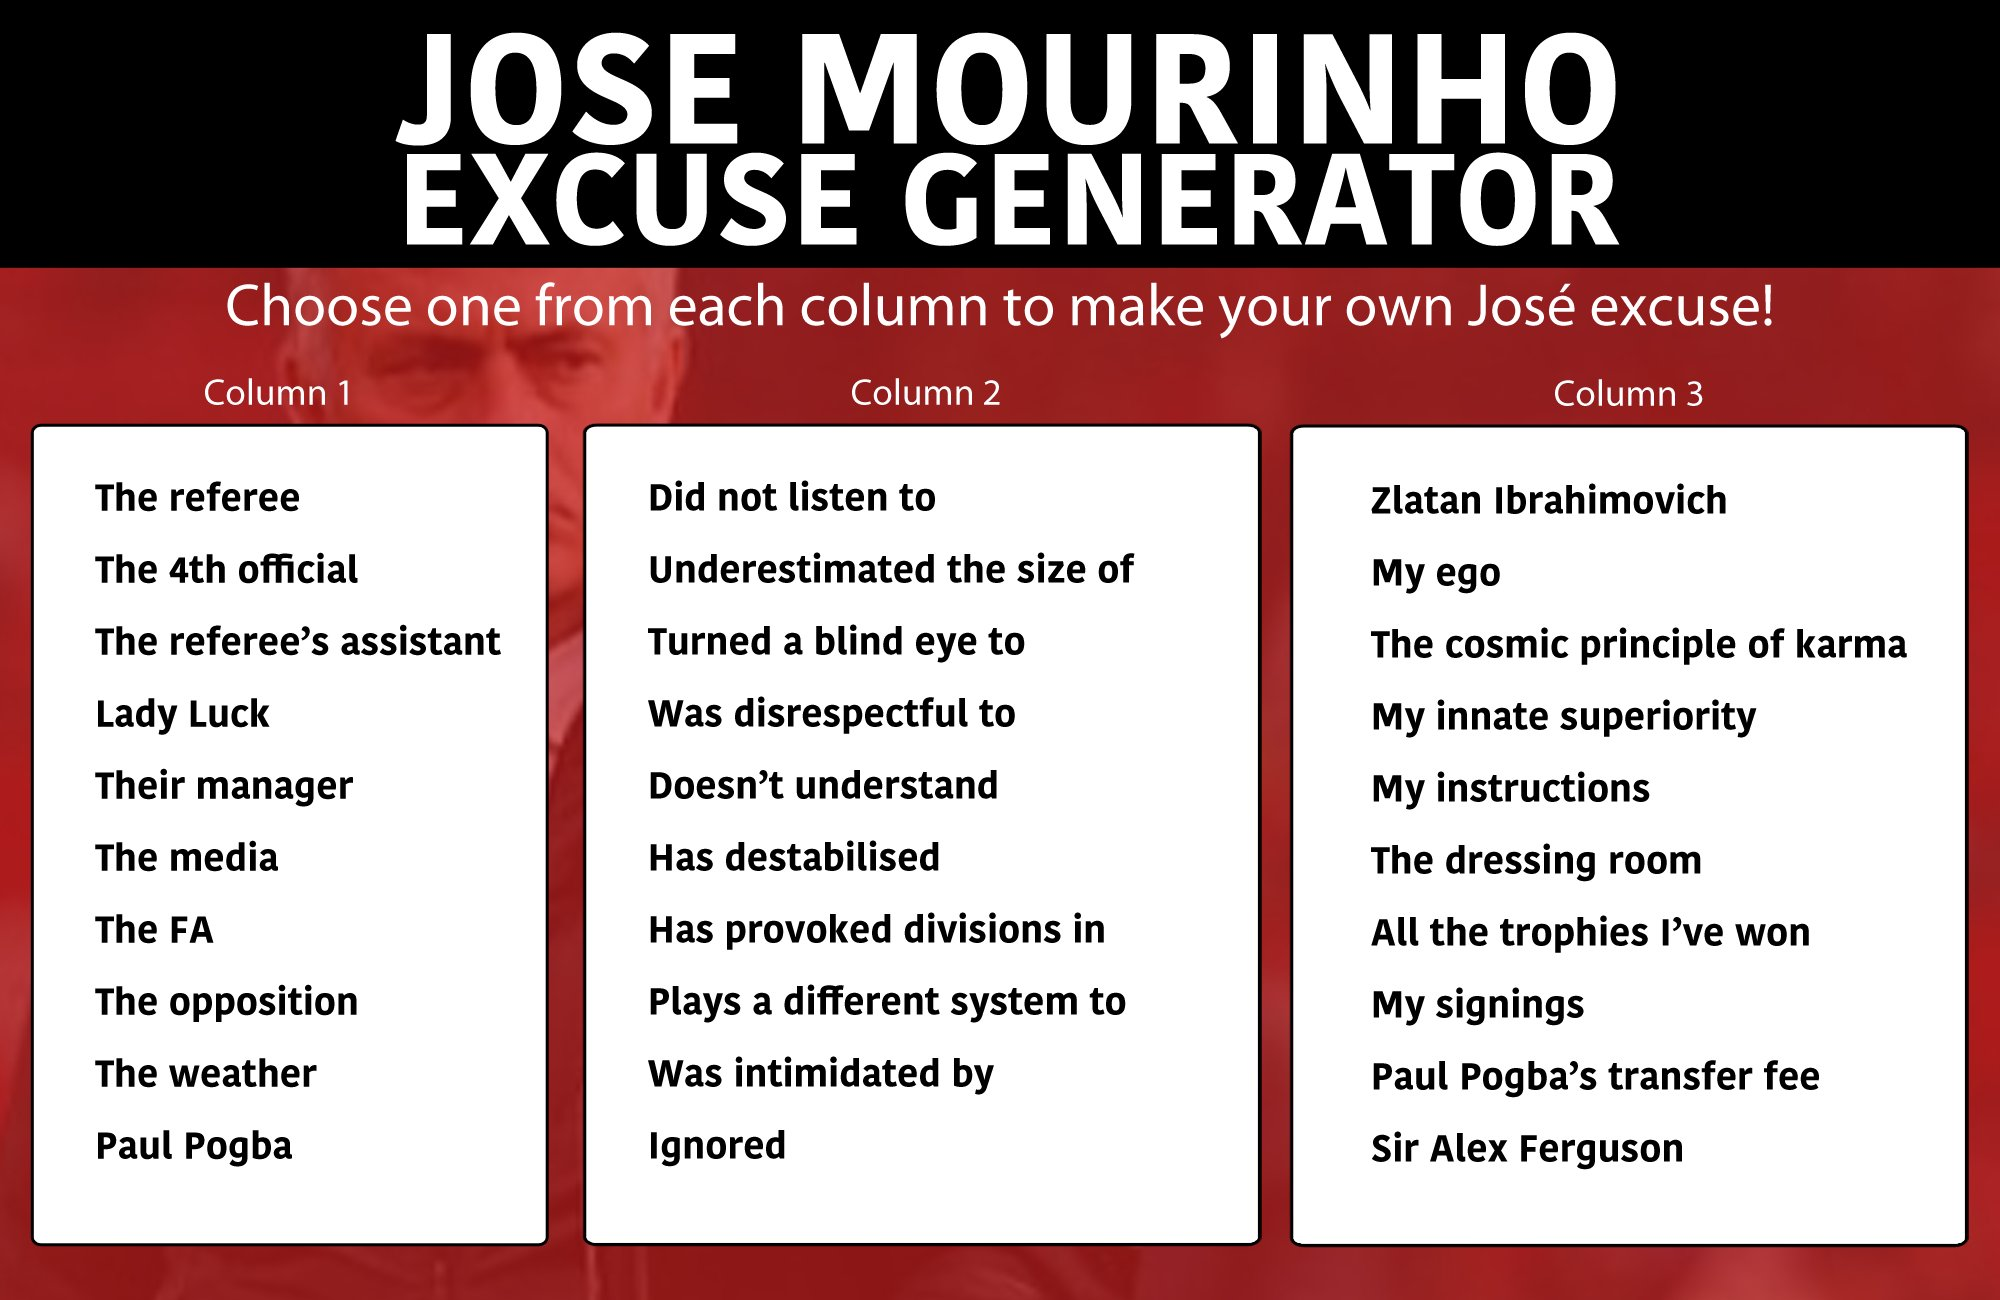 Managing Man Utd? You may find this Jose Mourinho Excuse Generator handy. #MUFC (done with @Jason_Spacey) https://t.co/ehVeNkYo83